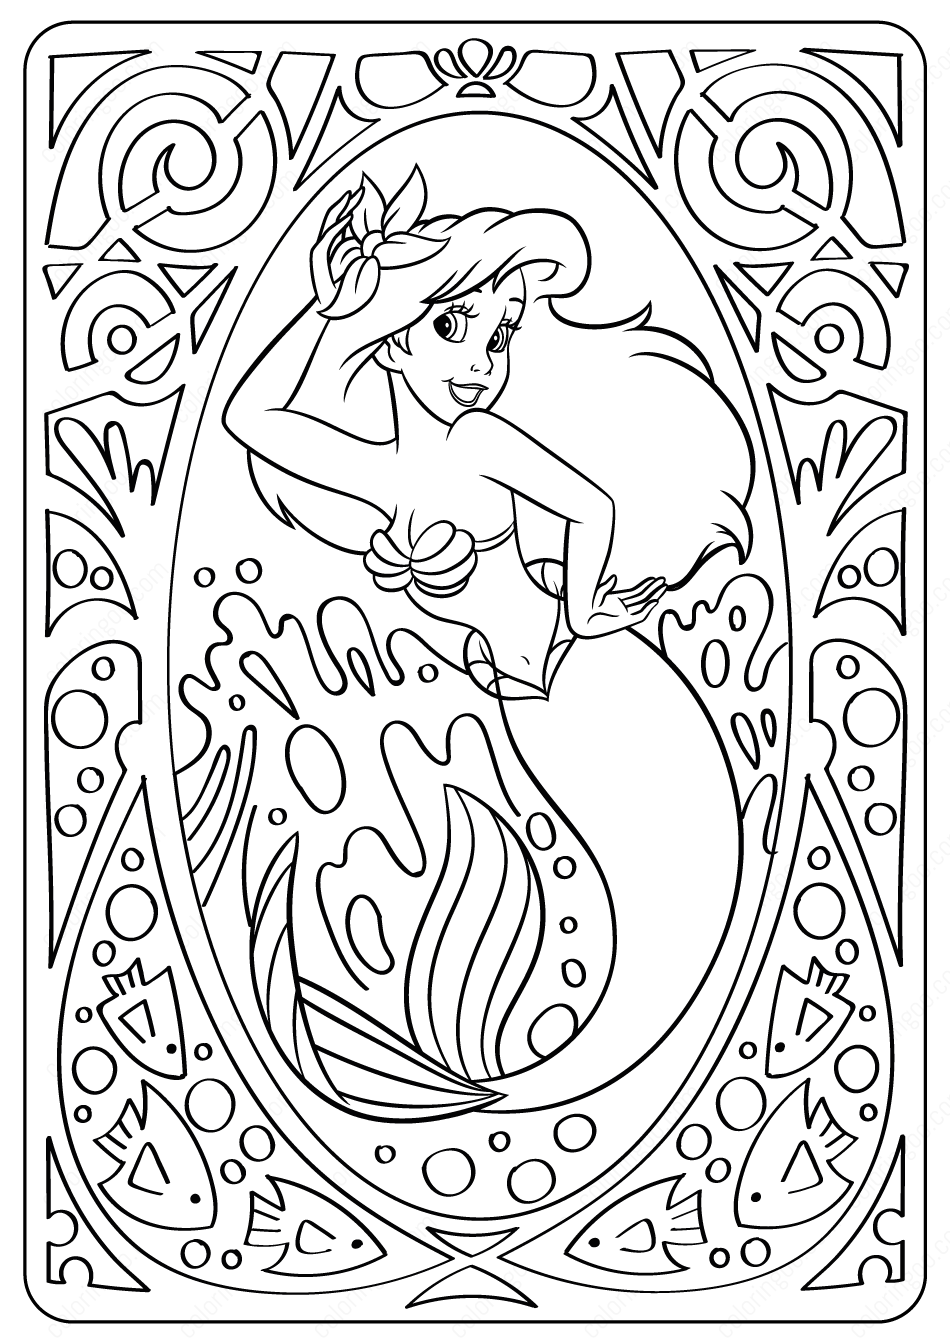 Lovely Ariel Coloring Pages Ariel Coloring Pages Disney Coloring Pages Unicorn Coloring Pages